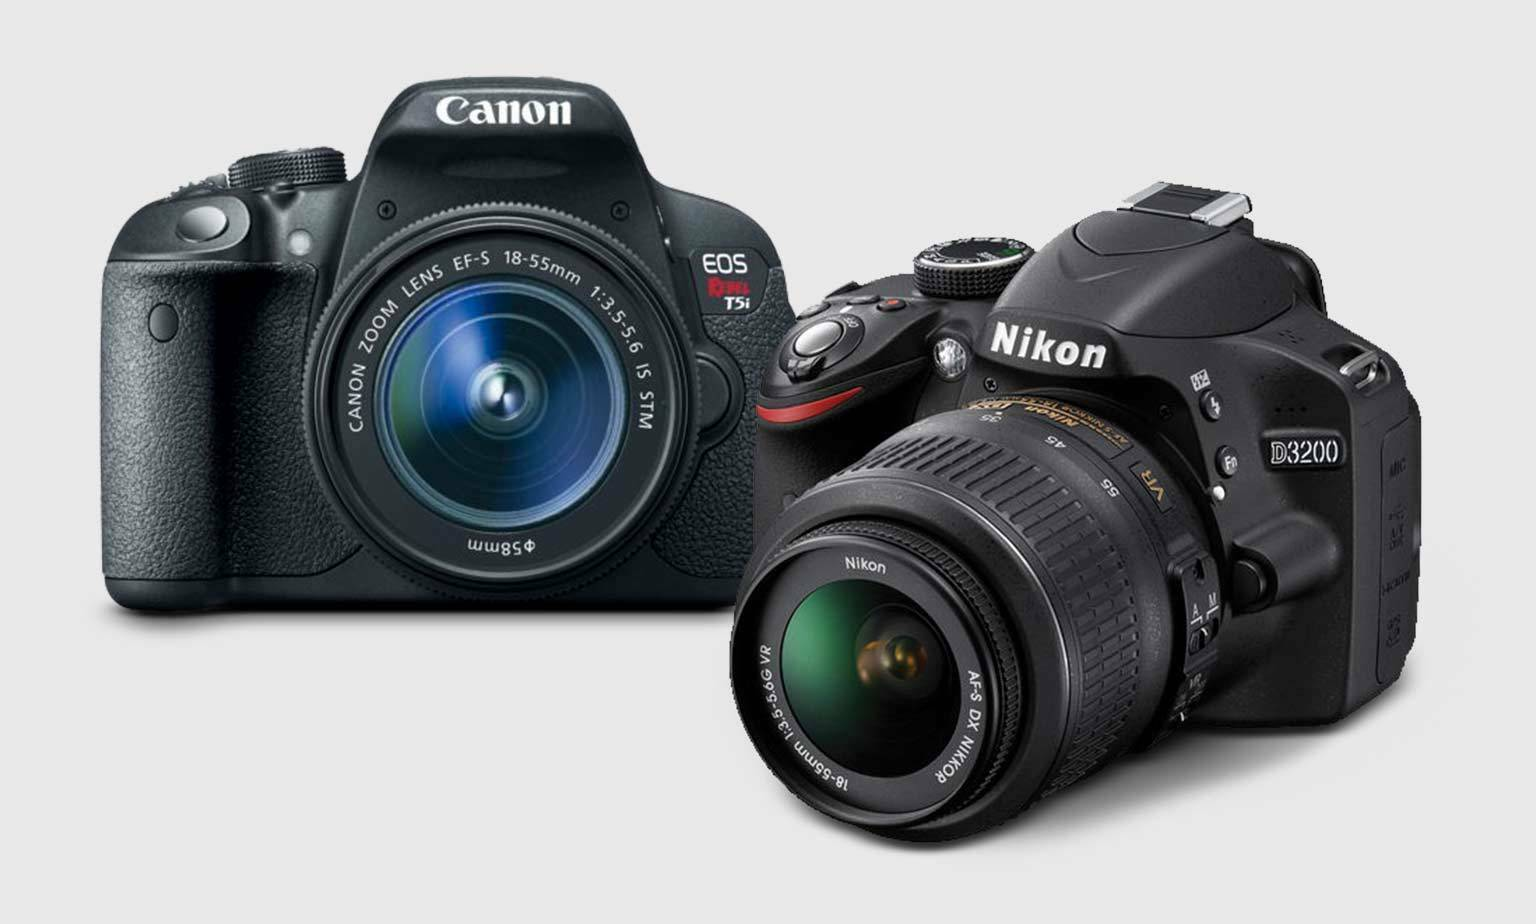 Up to 40% Off on Canon and Nikon DSLRs